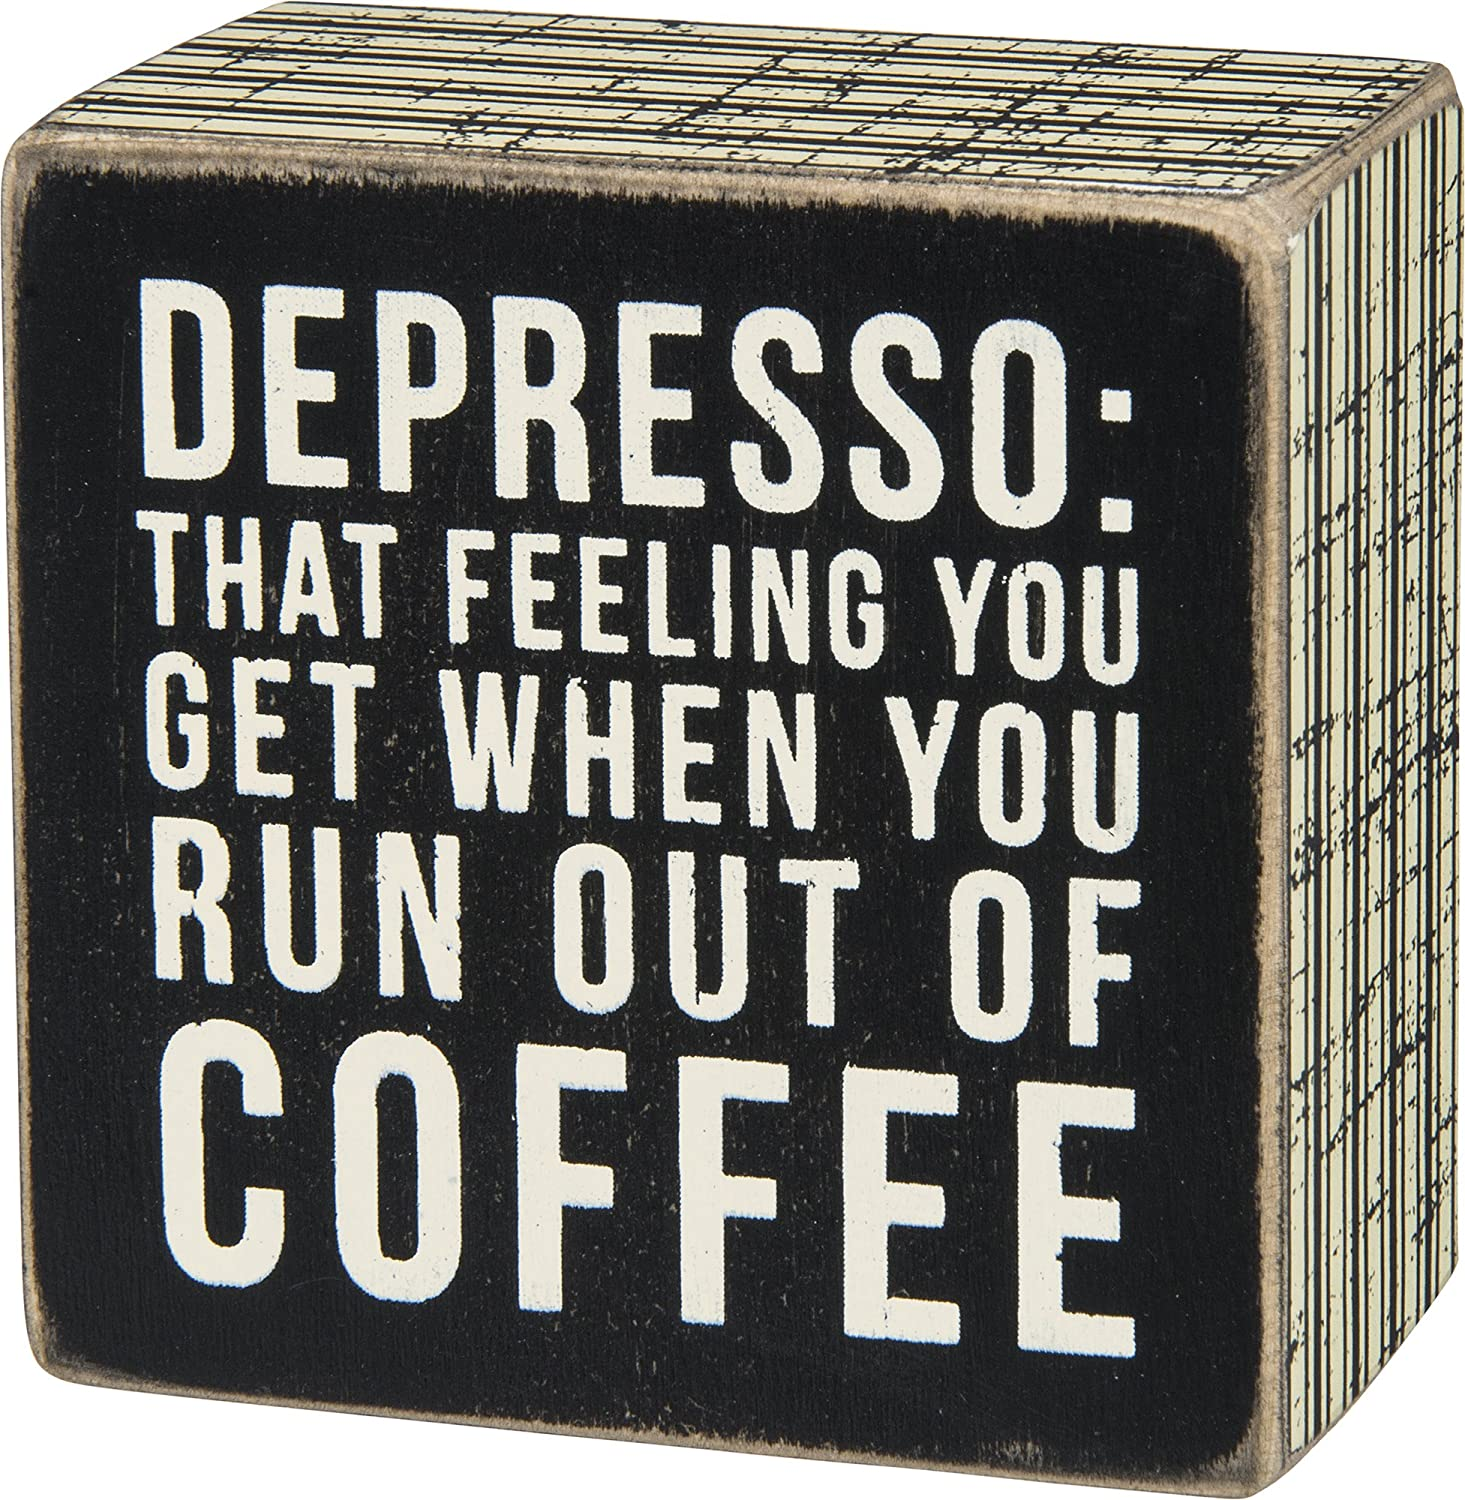 Depresso: That Feeling You Get When You Run Out of Coffee Box Sign Primitives by Kathy